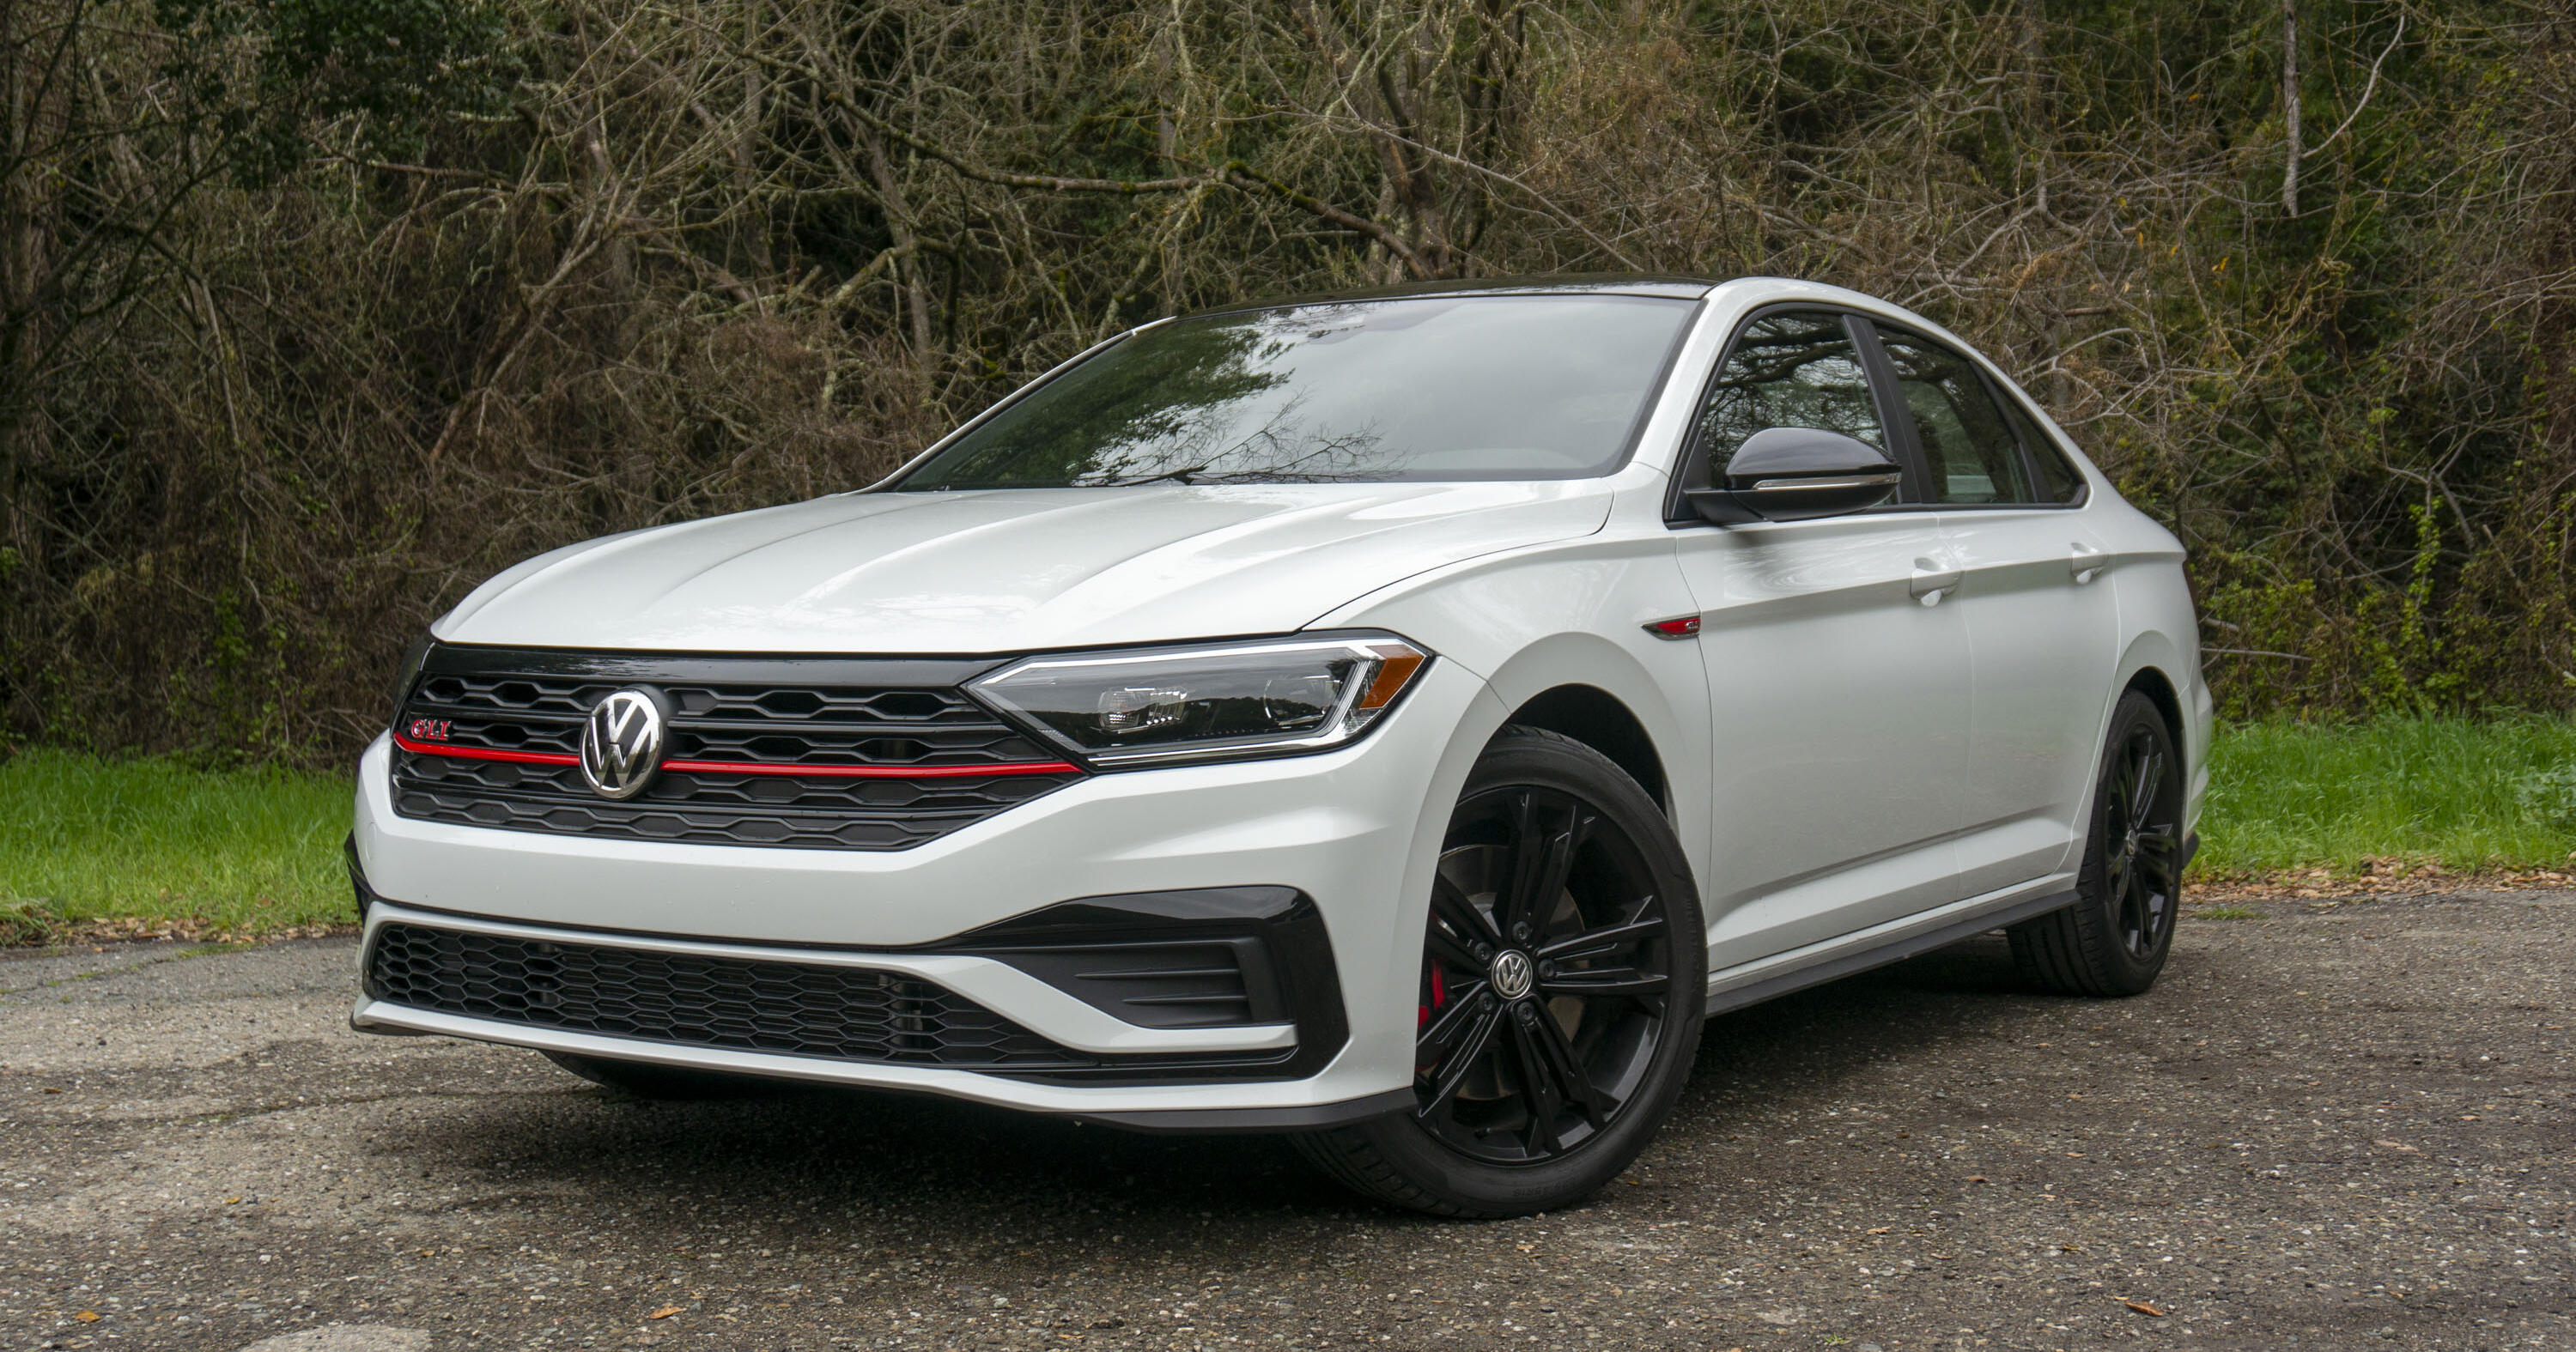 2021 Volkswagen Jetta GLI review: Hot hatch in sedan clothing     - Roadshow